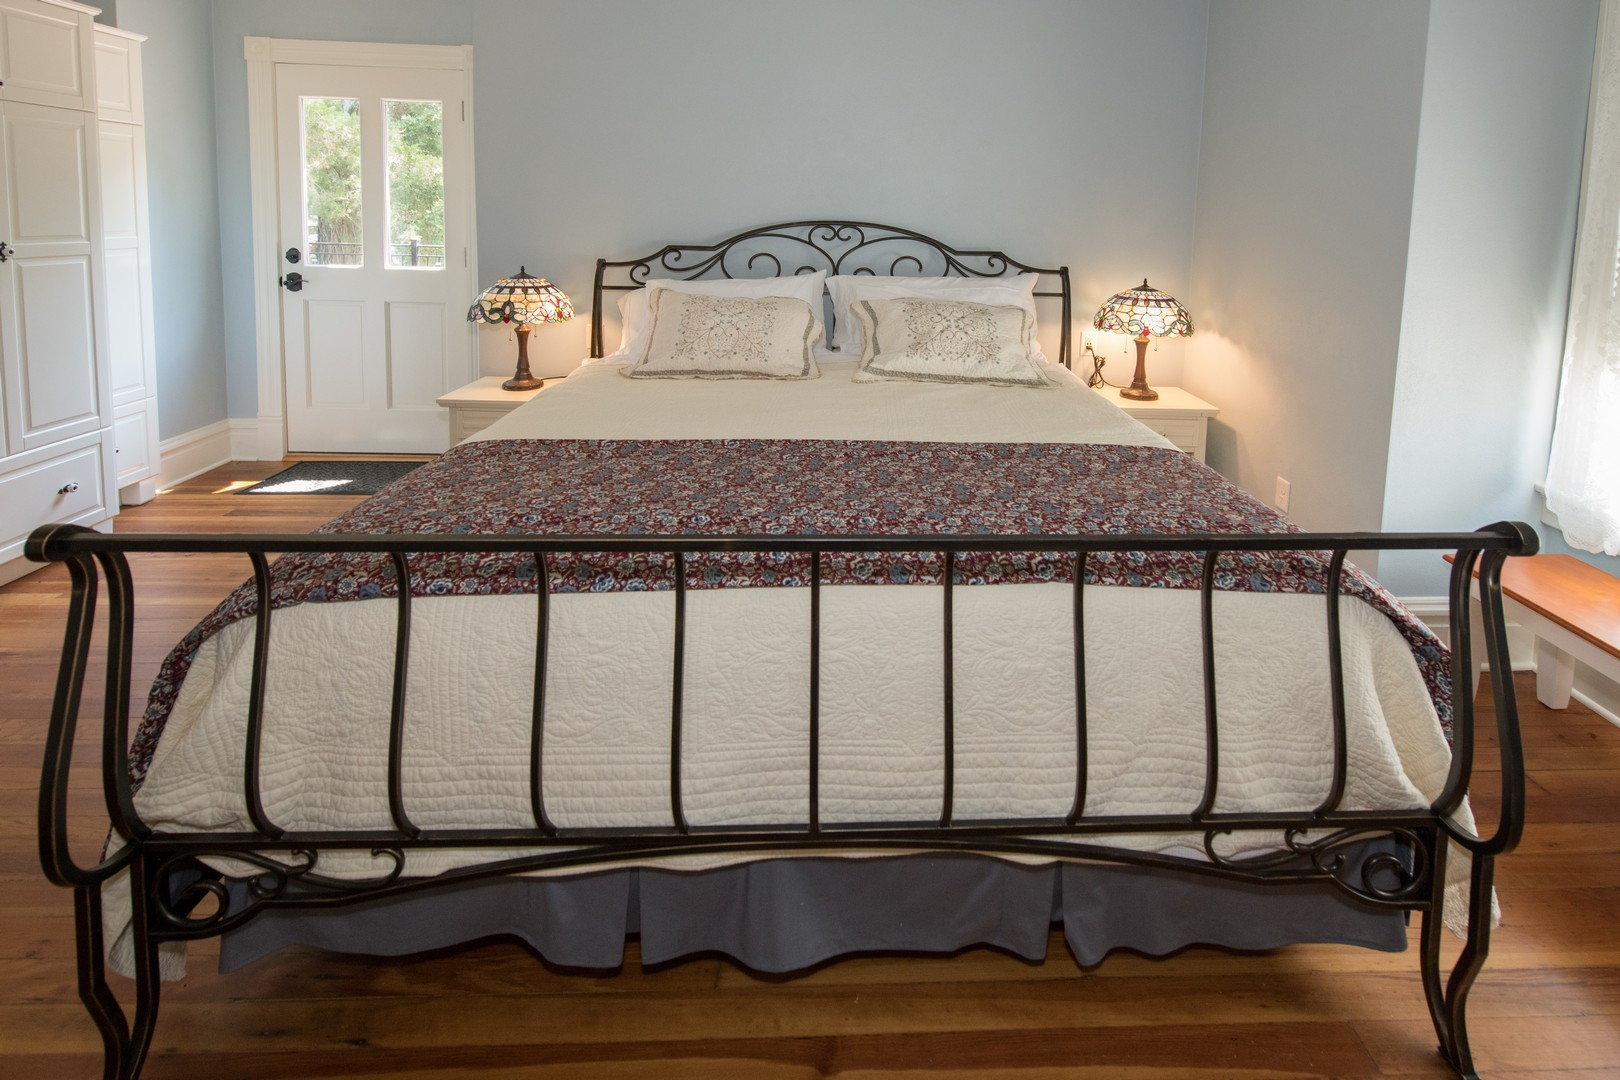 The Delphinium guest room with king bed.